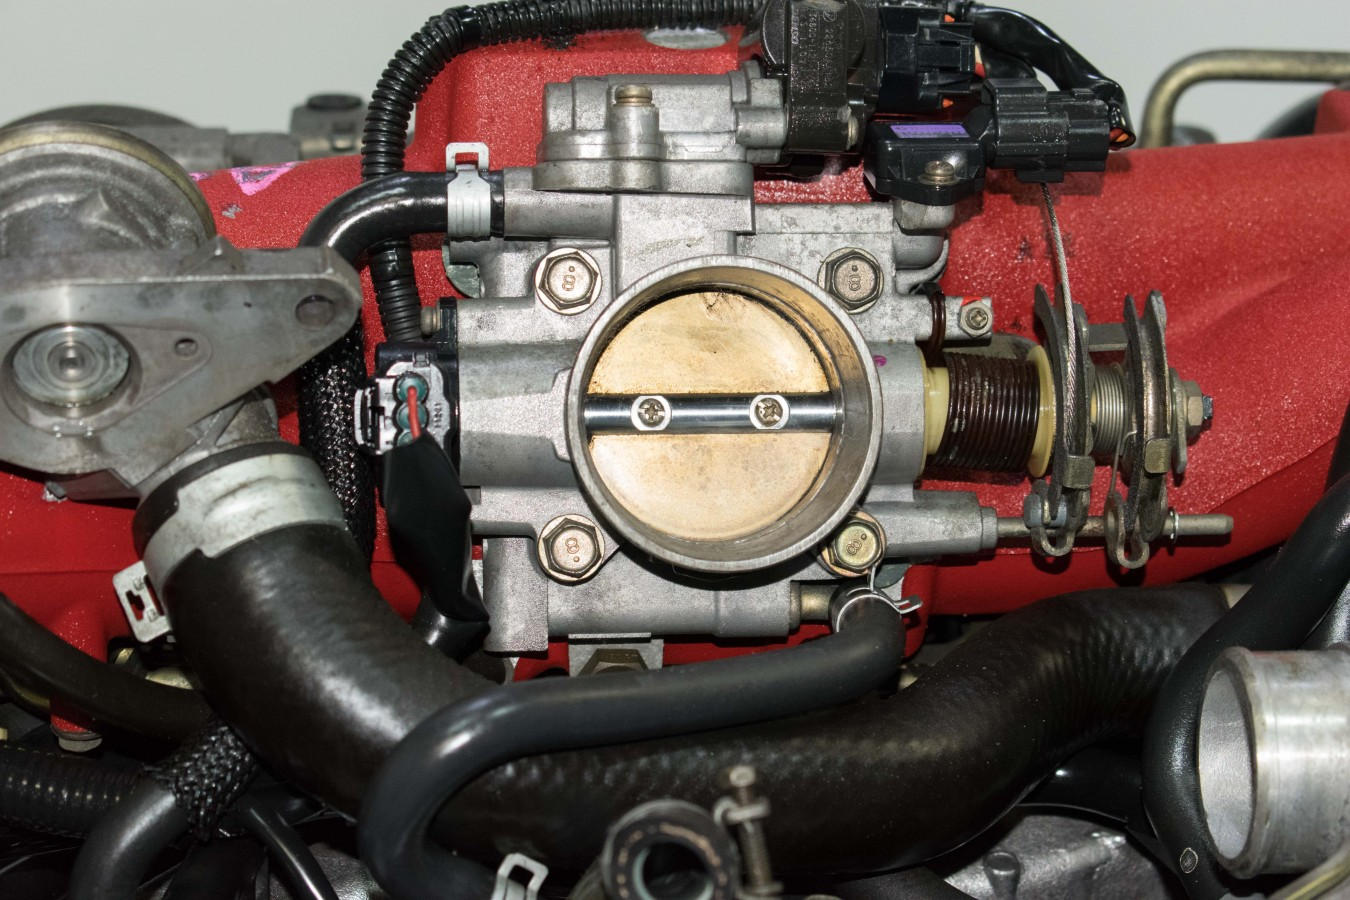 JDM EJ207 Engine Ver  8 STI Motor Swap for 2002-2005 Impreza WRX with TMIC,  Downpipe and ECU Package for sale